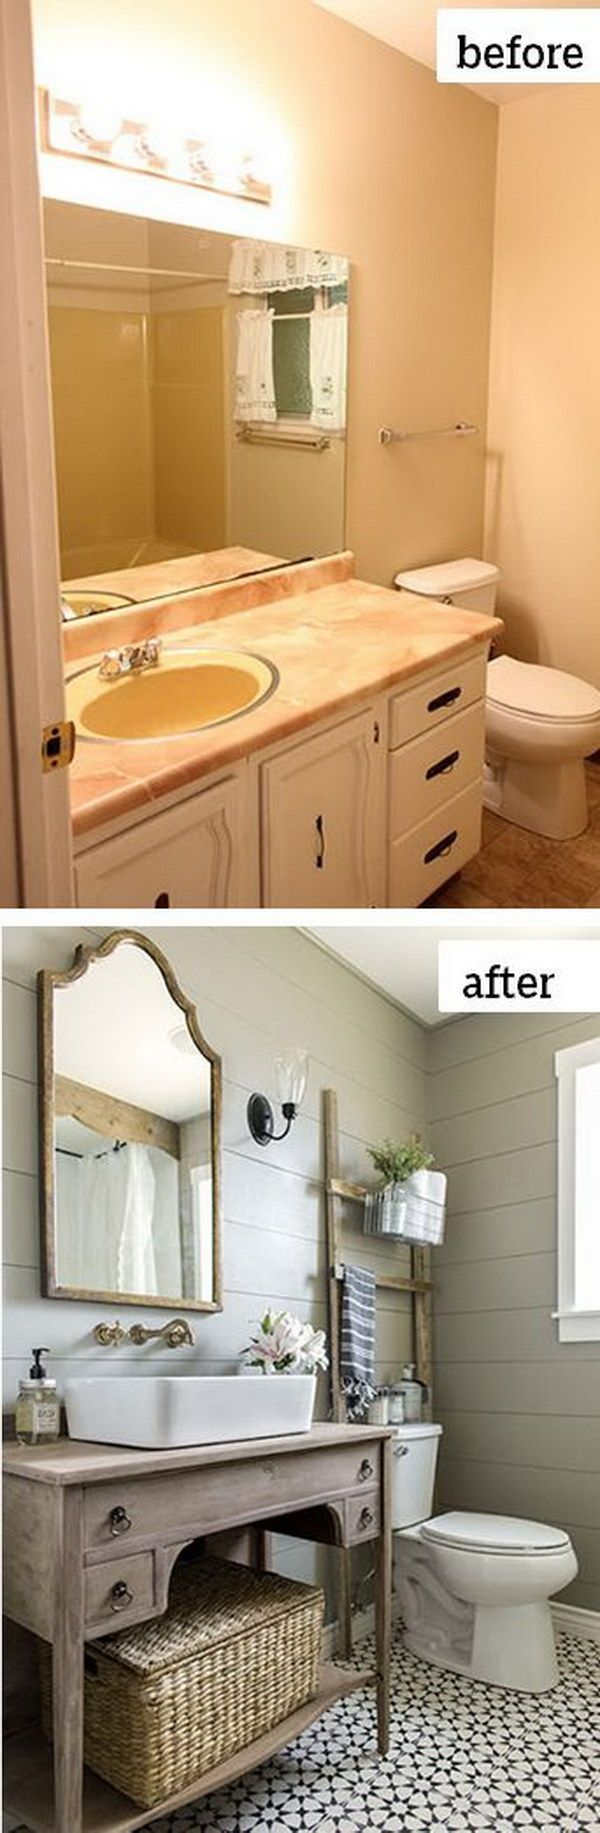 Bathroom Remodel On A Budget best 25+ bathroom before after ideas on pinterest | modern